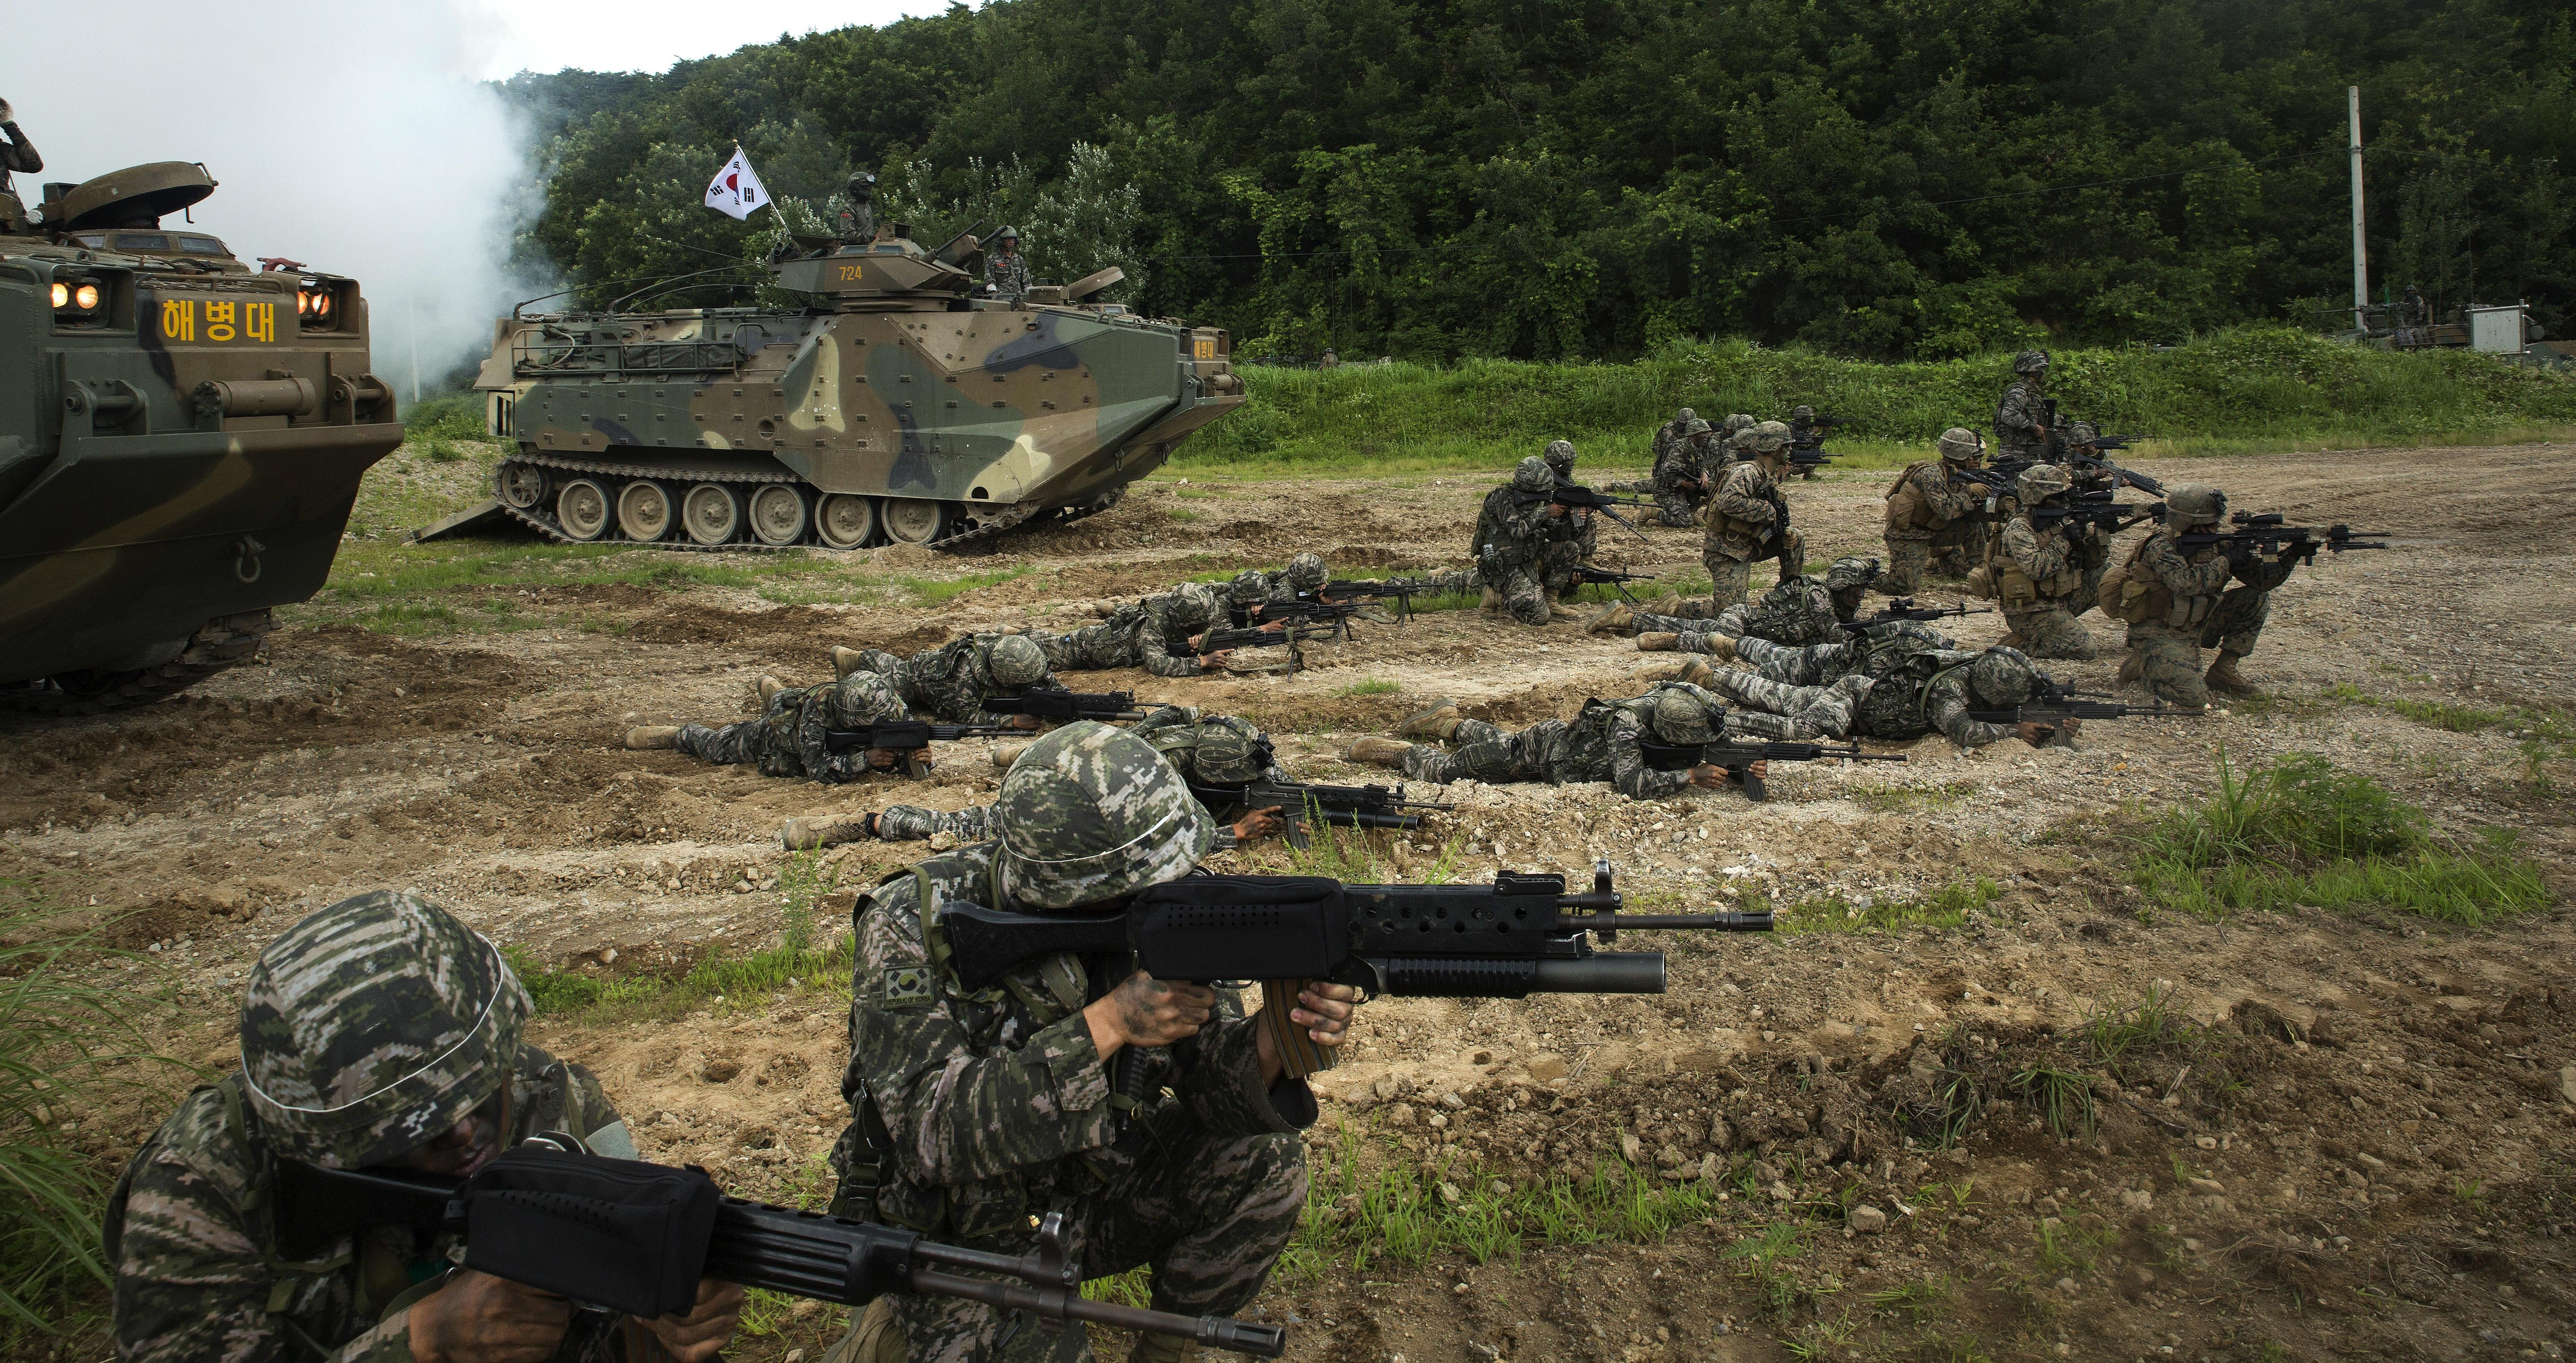 American And Republic Of Korea Marines Sight In Side By Front South Korean Assault Amphibious Vehicles During A Training Exercise At Suseong